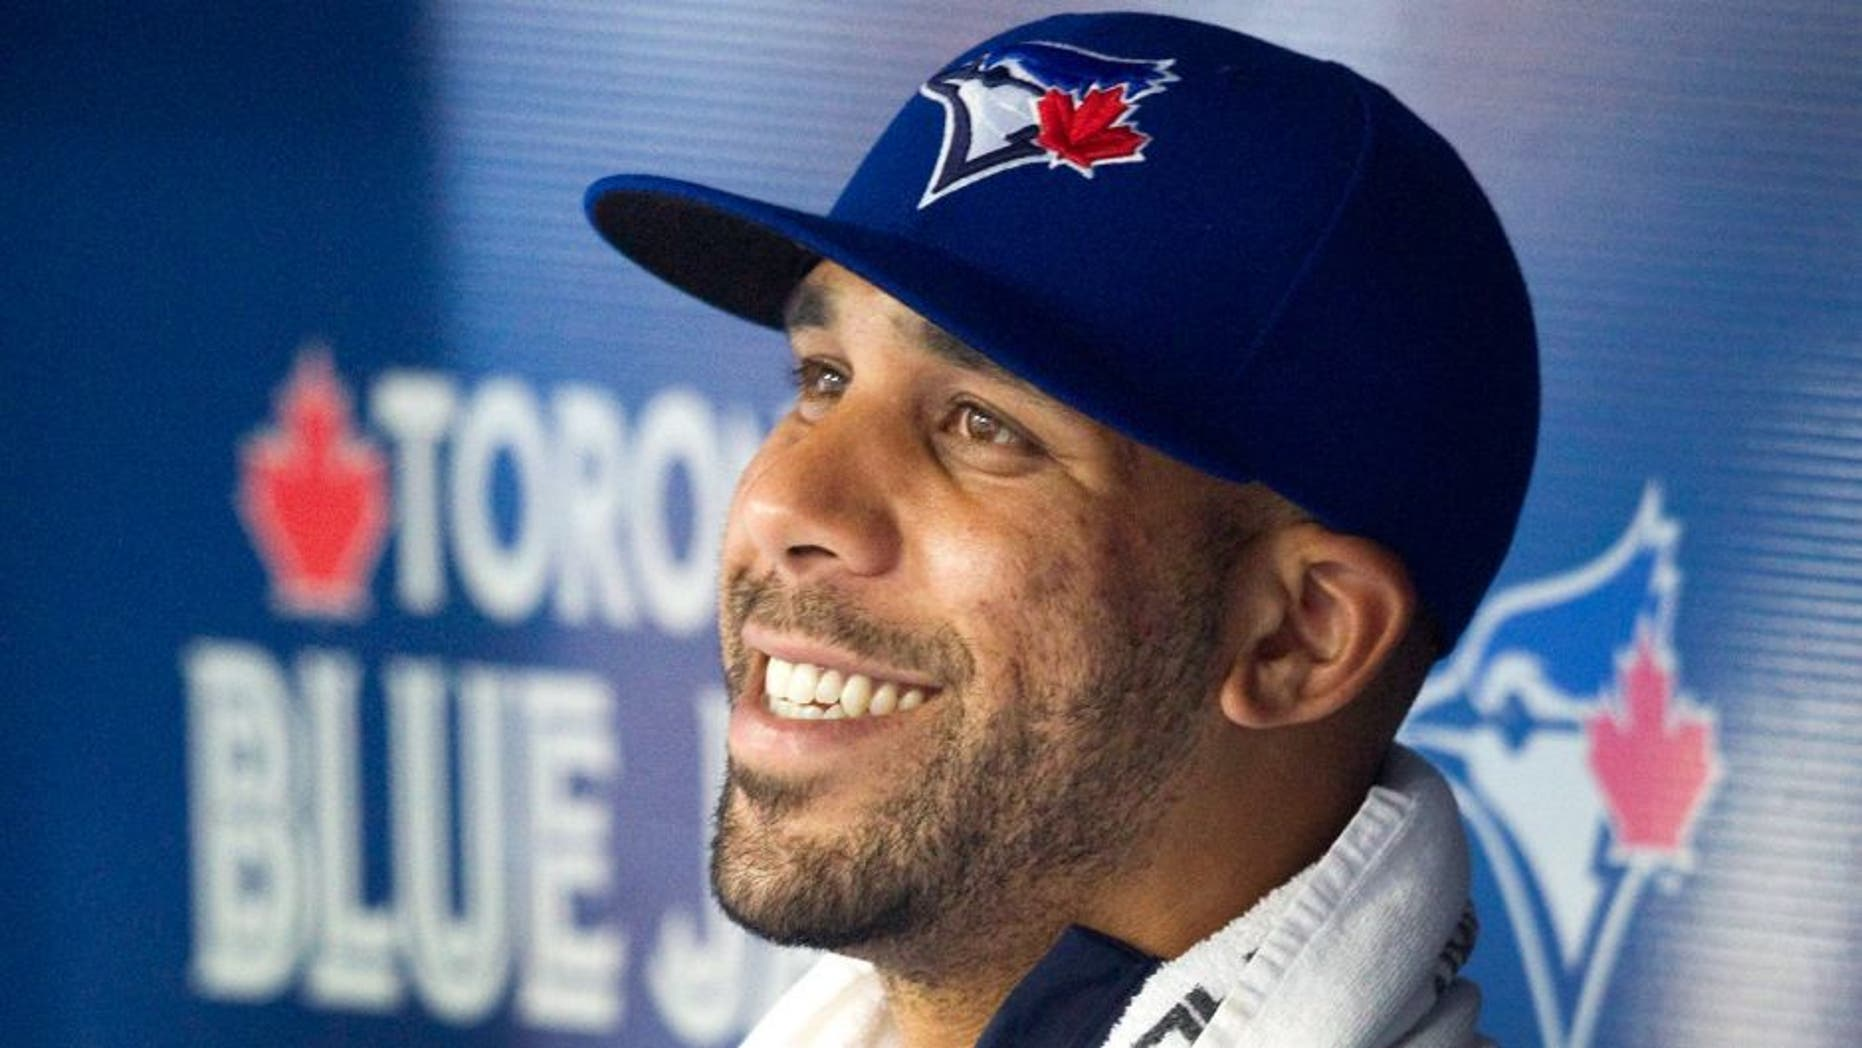 Toronto Blue Jays newly acquired starting pitcher David Price smiles in the dugout as his team plays the Kansas City Royals during the second inning of a baseball game, Friday, July 31, 2015 in Toronto. (Fred Thornhill/The Canadian Press via AP) MANDATORY CREDIT